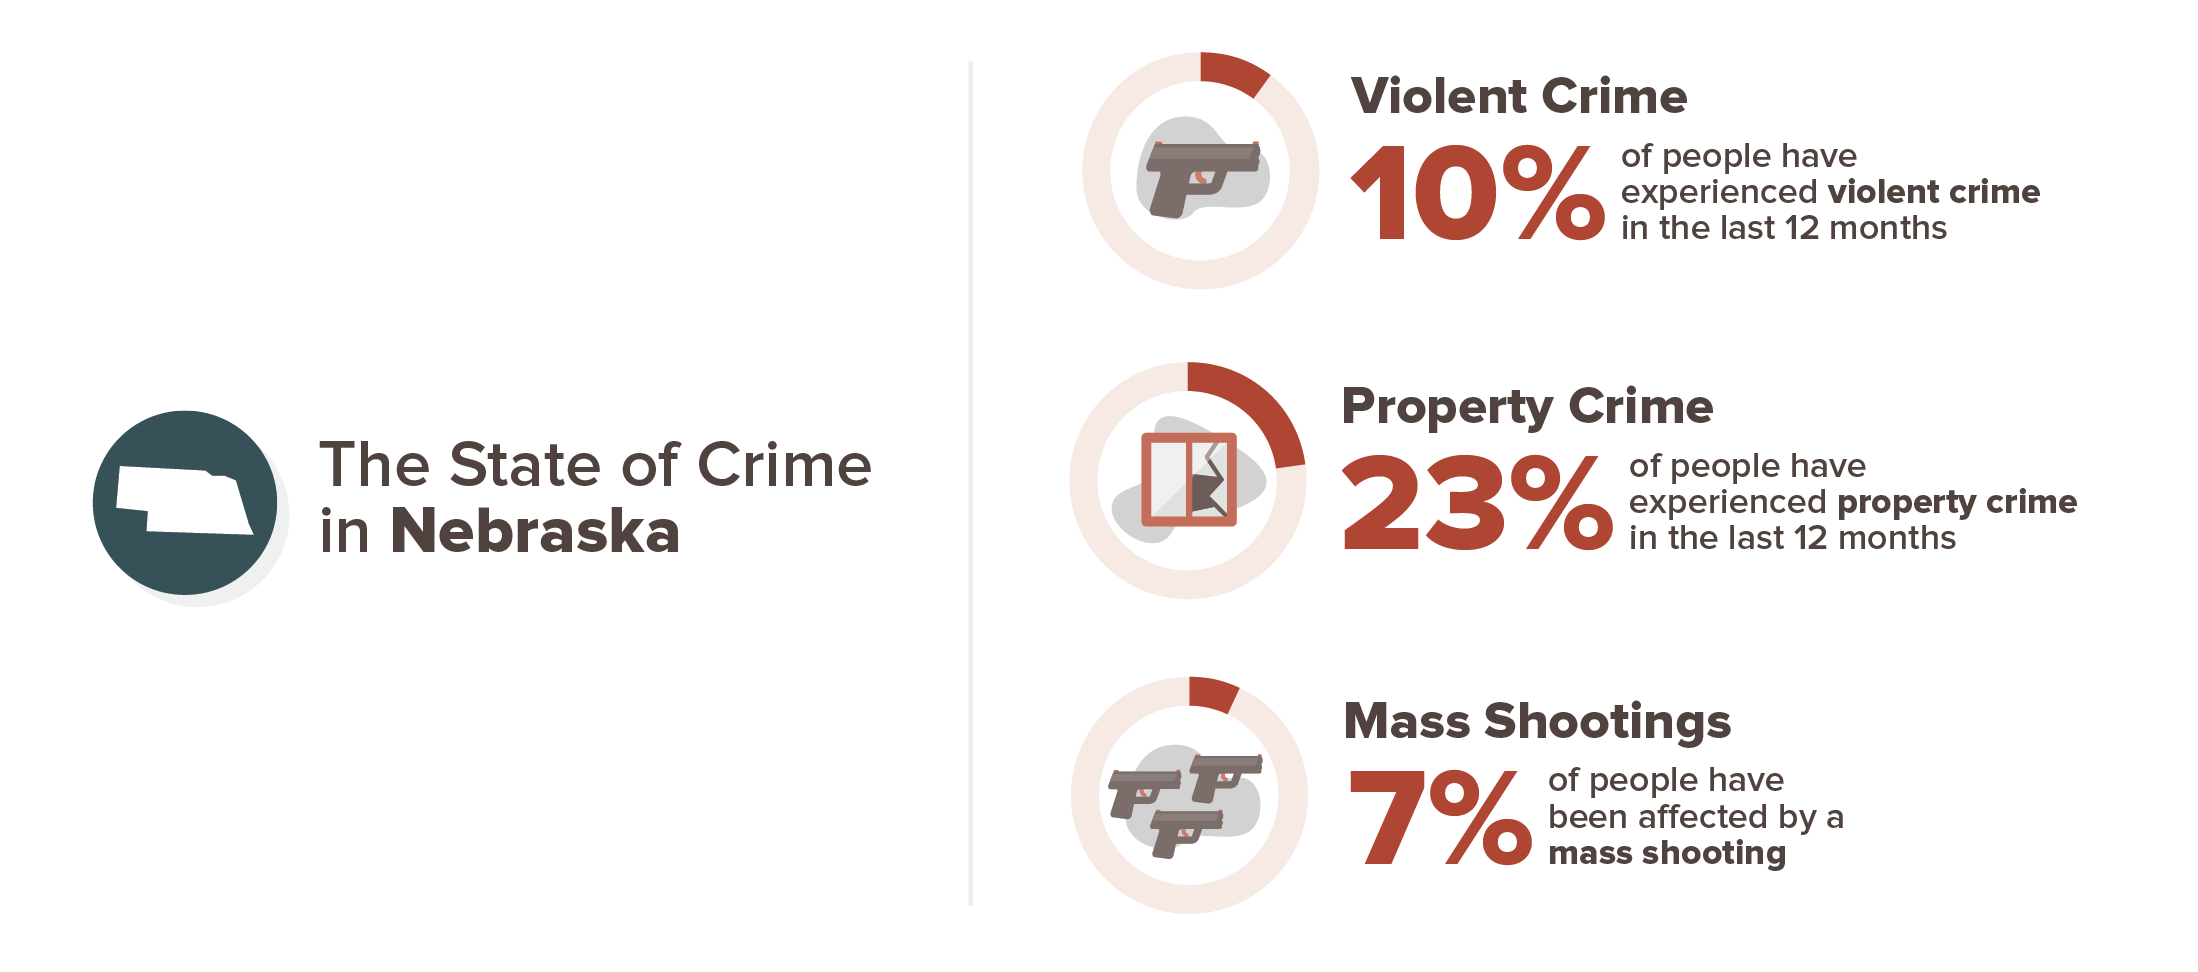 10 percent have experienced violent crime, 23 percent have experienced property crime, 7 percent have been affected by a mass shooting